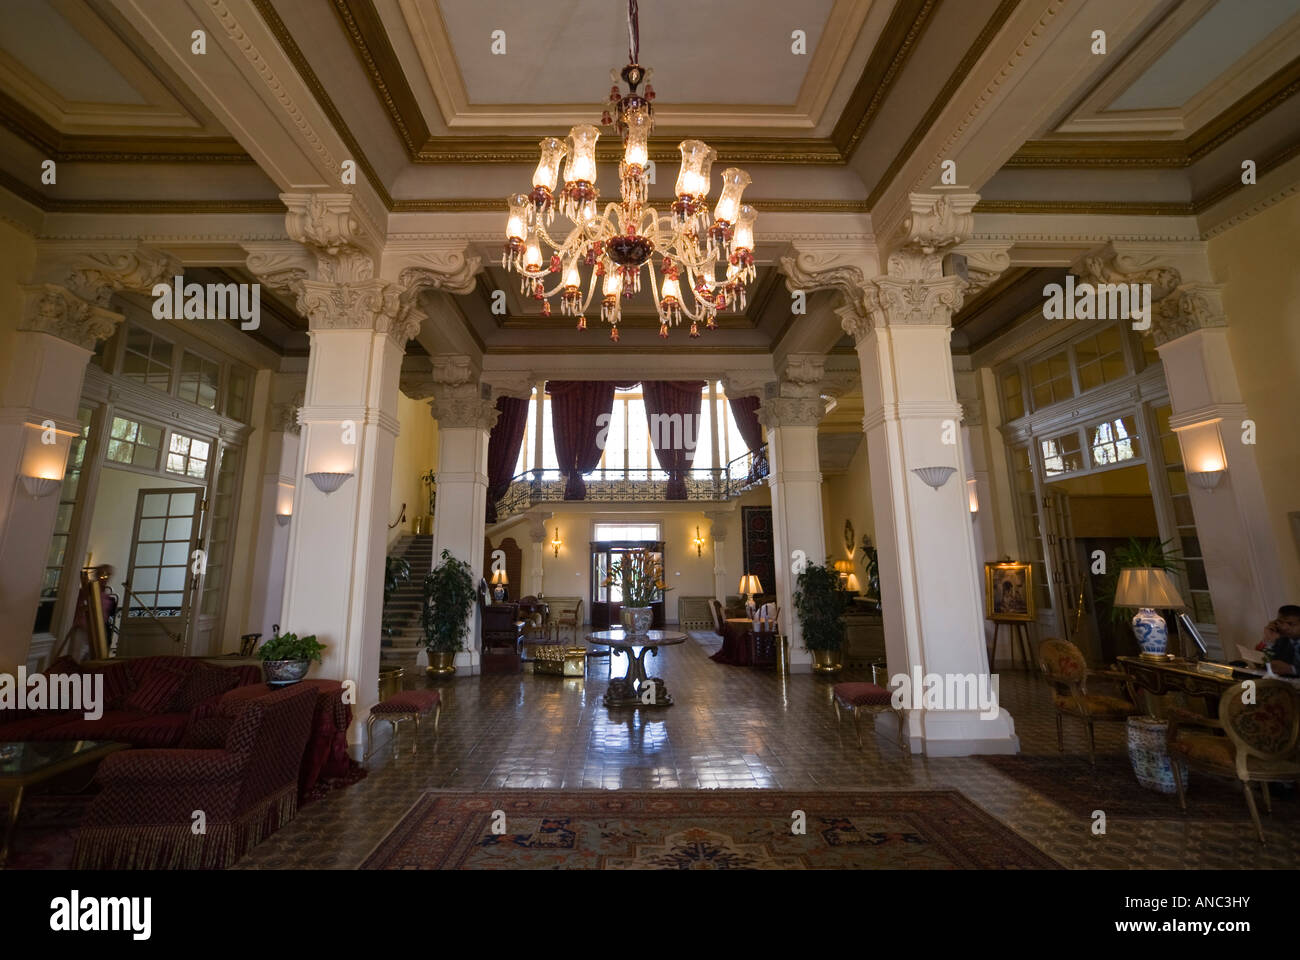 Foyer Hotel : Luxor the winter palace hotel main reception foyer or